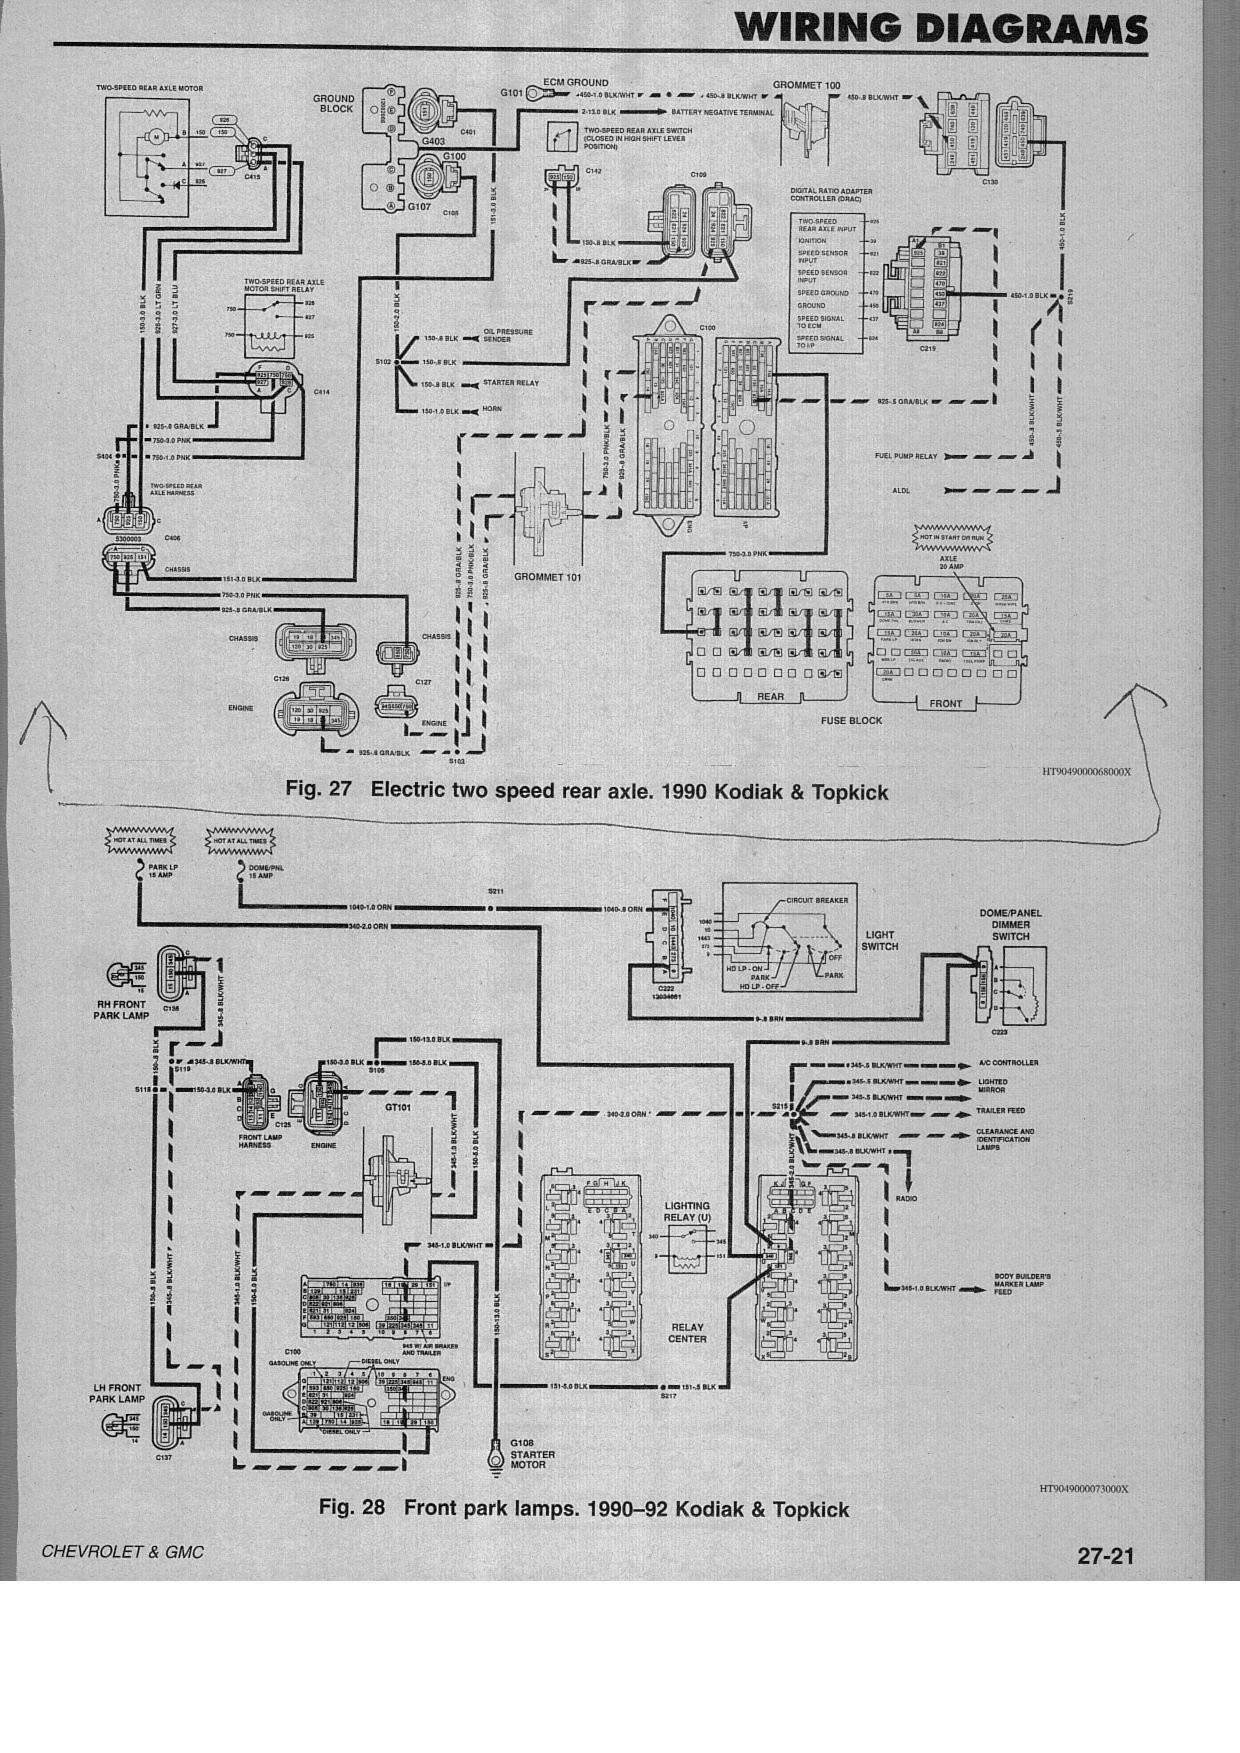 1992 chevrolet kodiak wiring diagram complete wiring diagrams chevy kodiak wiring diagram wire center u2022 rh mitzuradio me 1996 chevy 1500 wiring diagram 2000 gmc trailer wiring diagram cheapraybanclubmaster Image collections